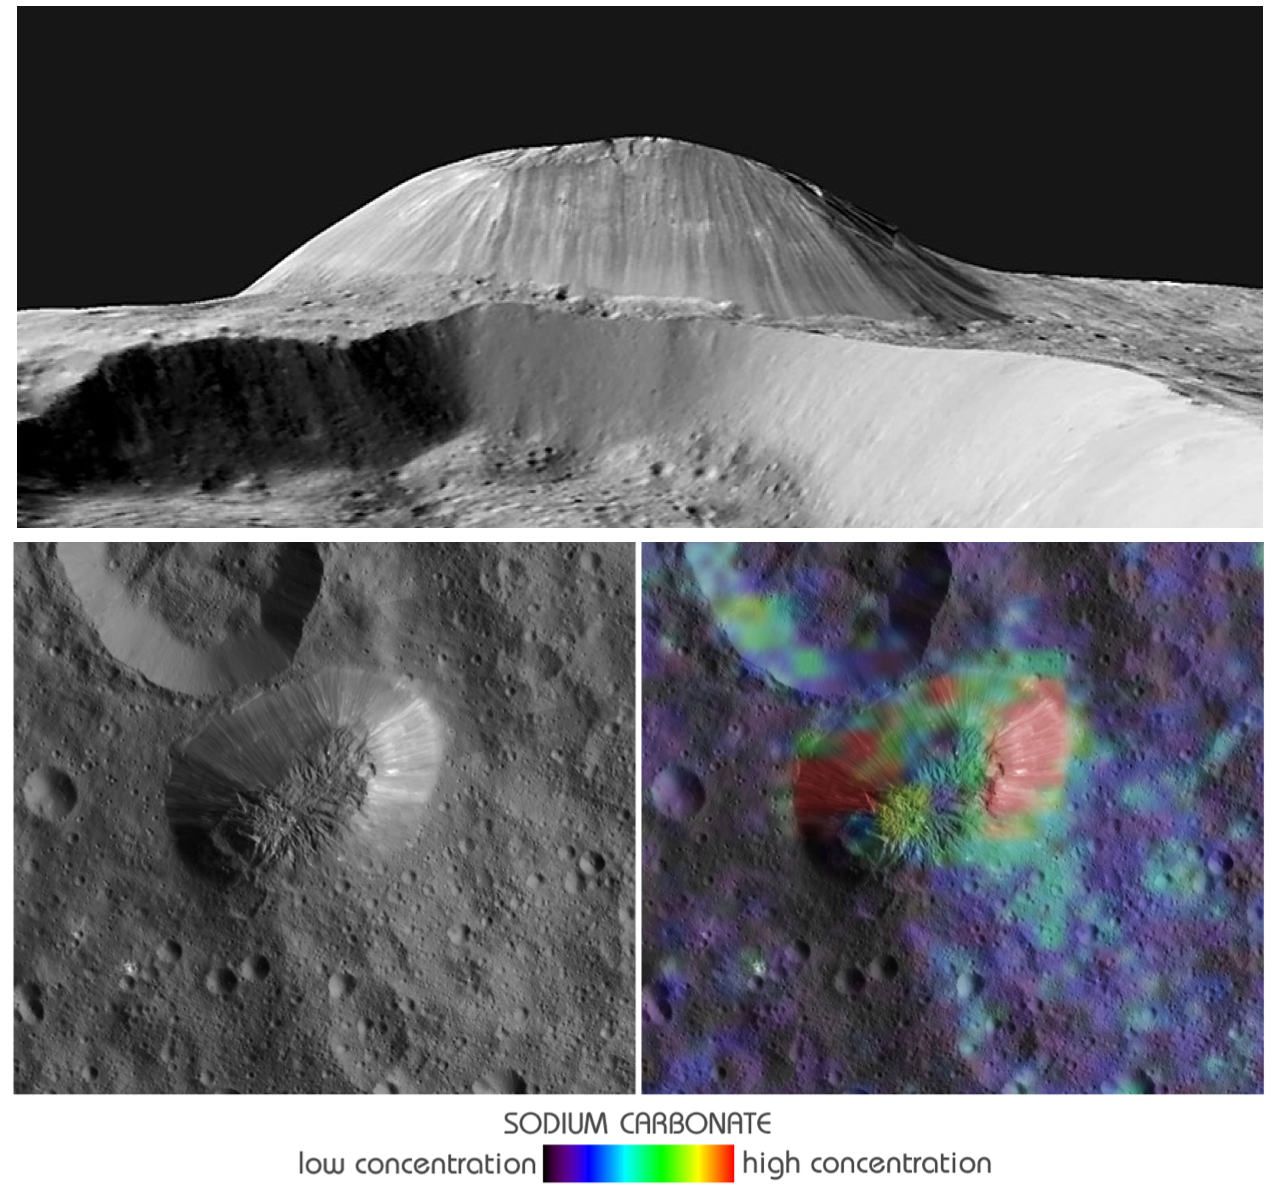 This view from NASA's Dawn mission shows Ceres's tallest mountain, Ahuna Mons, 2.5 miles or 4 kilometers high and 11 miles or 17 kilometers wide. This is one of the few sites on Ceres at which a significant amount of sodium carbonate has been found, shown in green and red colors in the lower right image. Caption and Image Credit: NASA / JPL-Caltech